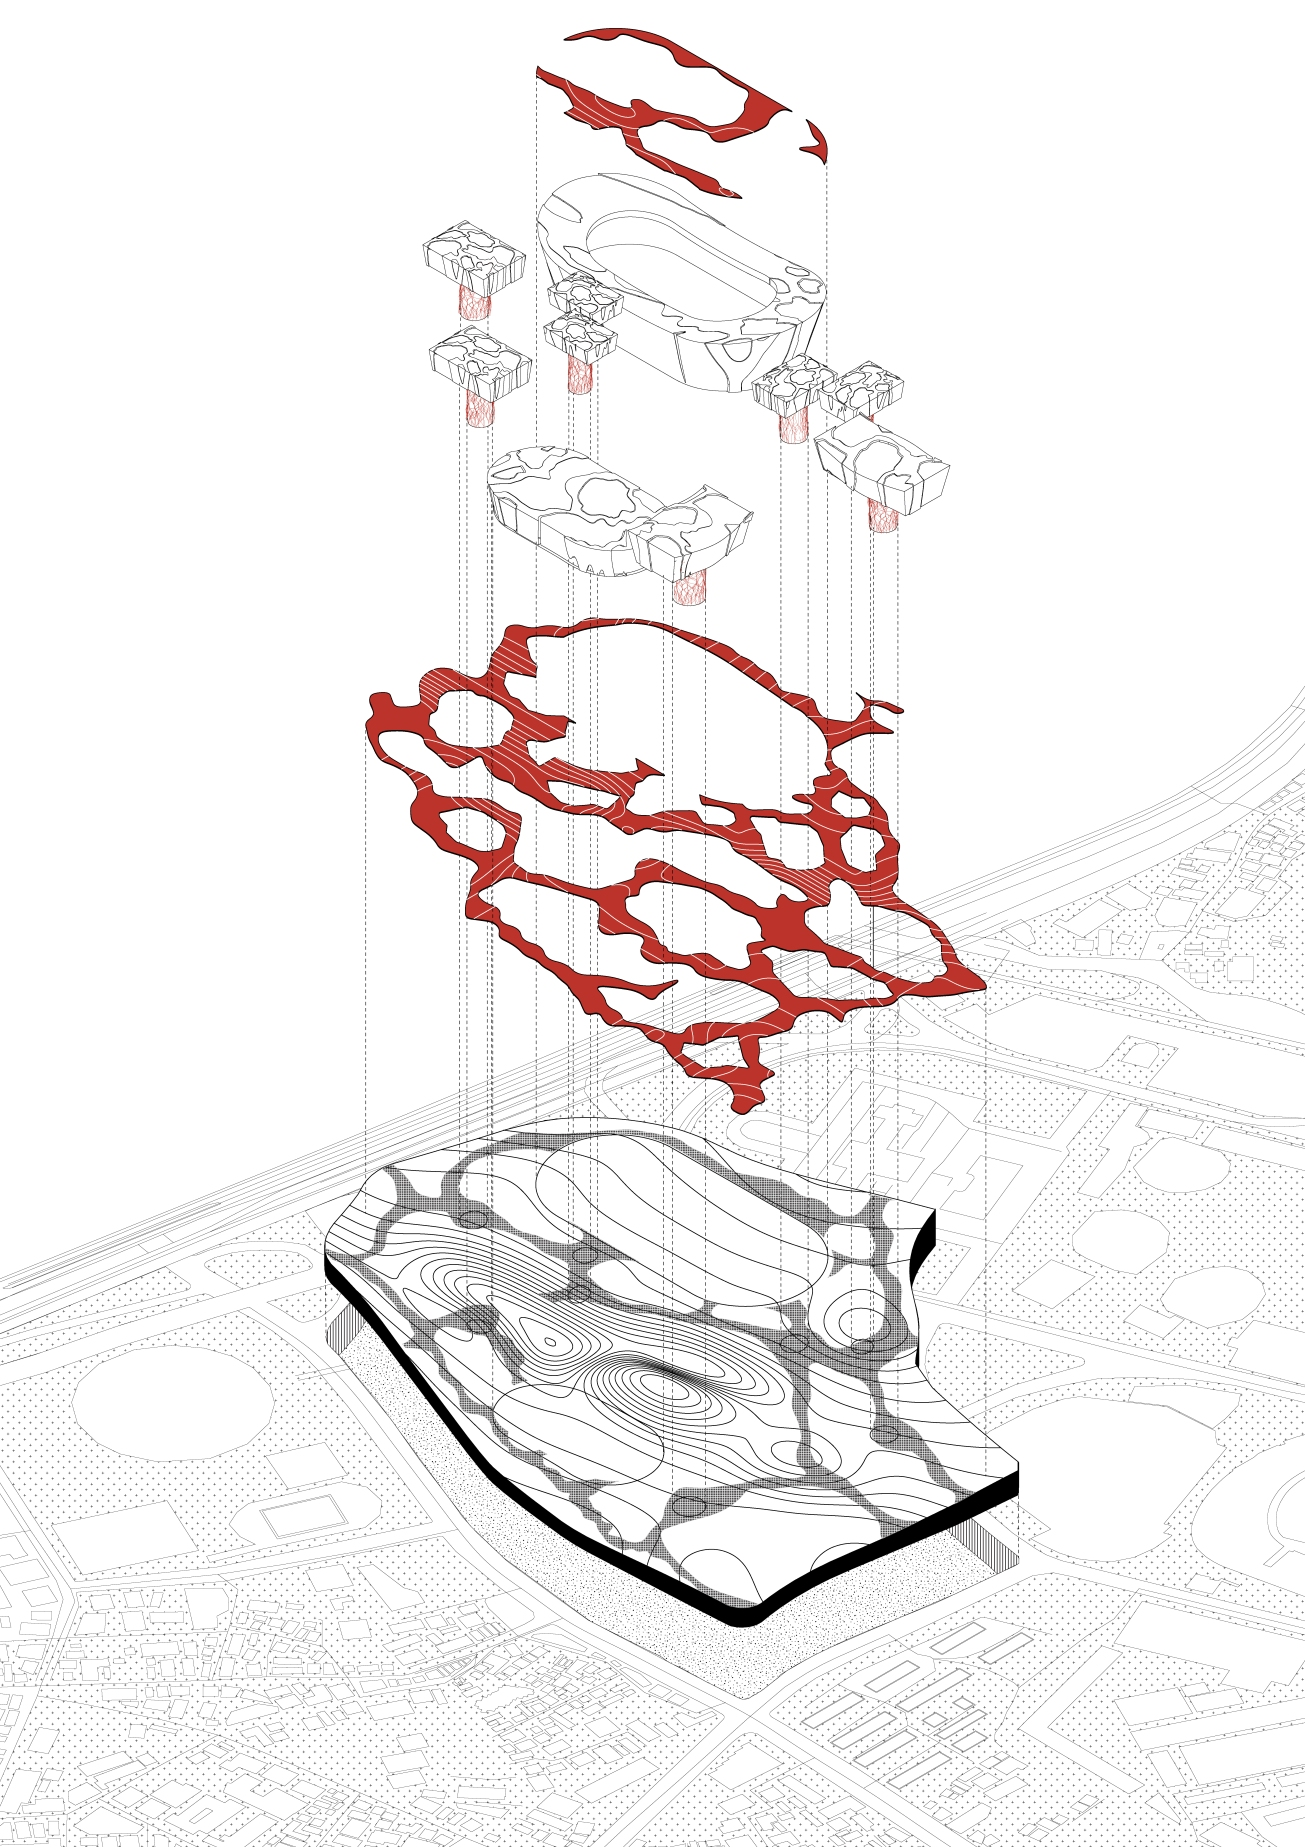 the-blob-site-exploded-masterplan-davide-masserini-tsinghua-university-spring-2016